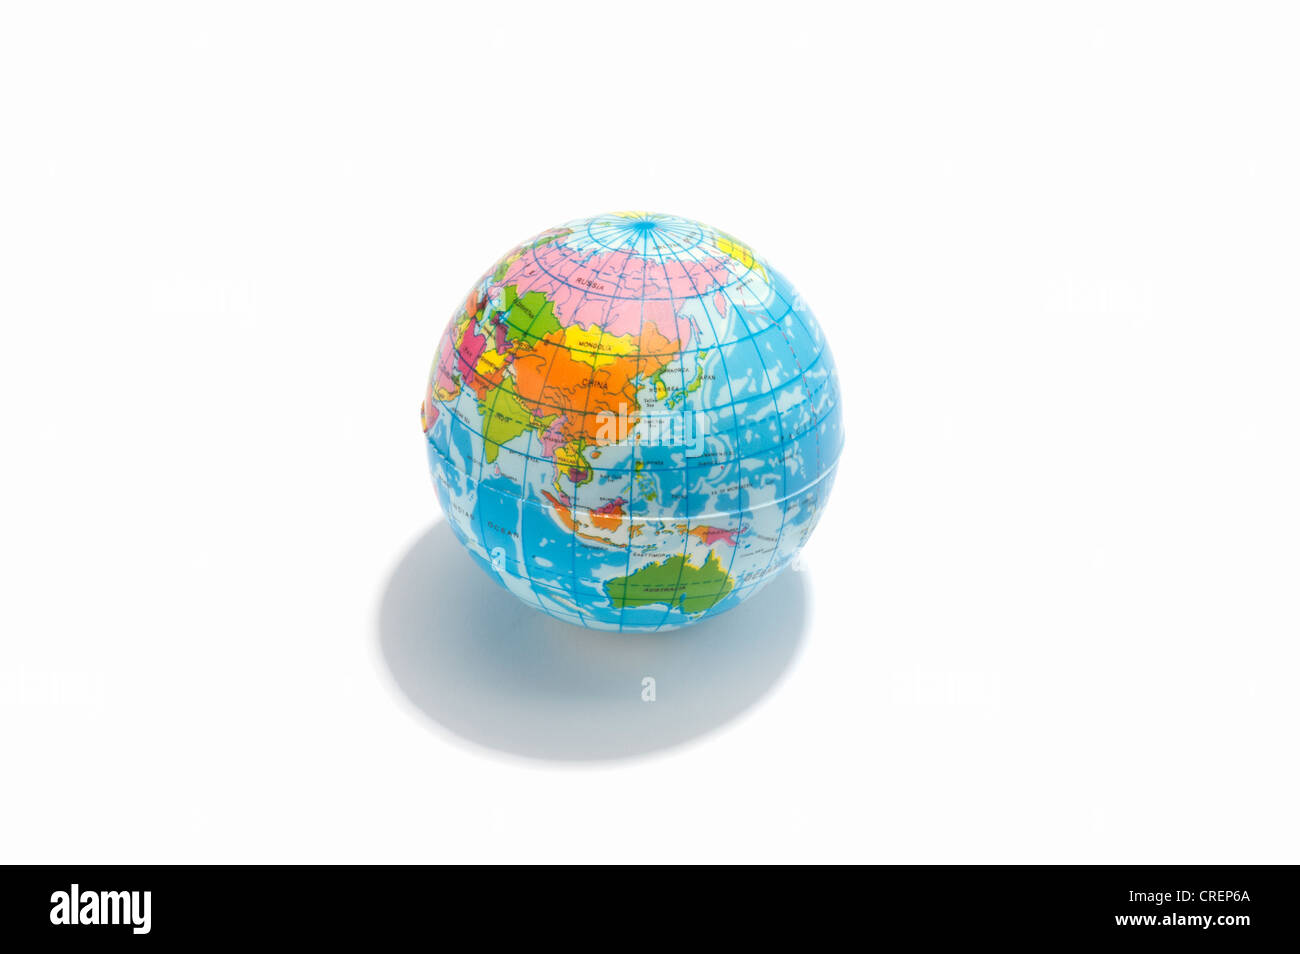 A toy globe, showing Asia and Australia - Stock Image